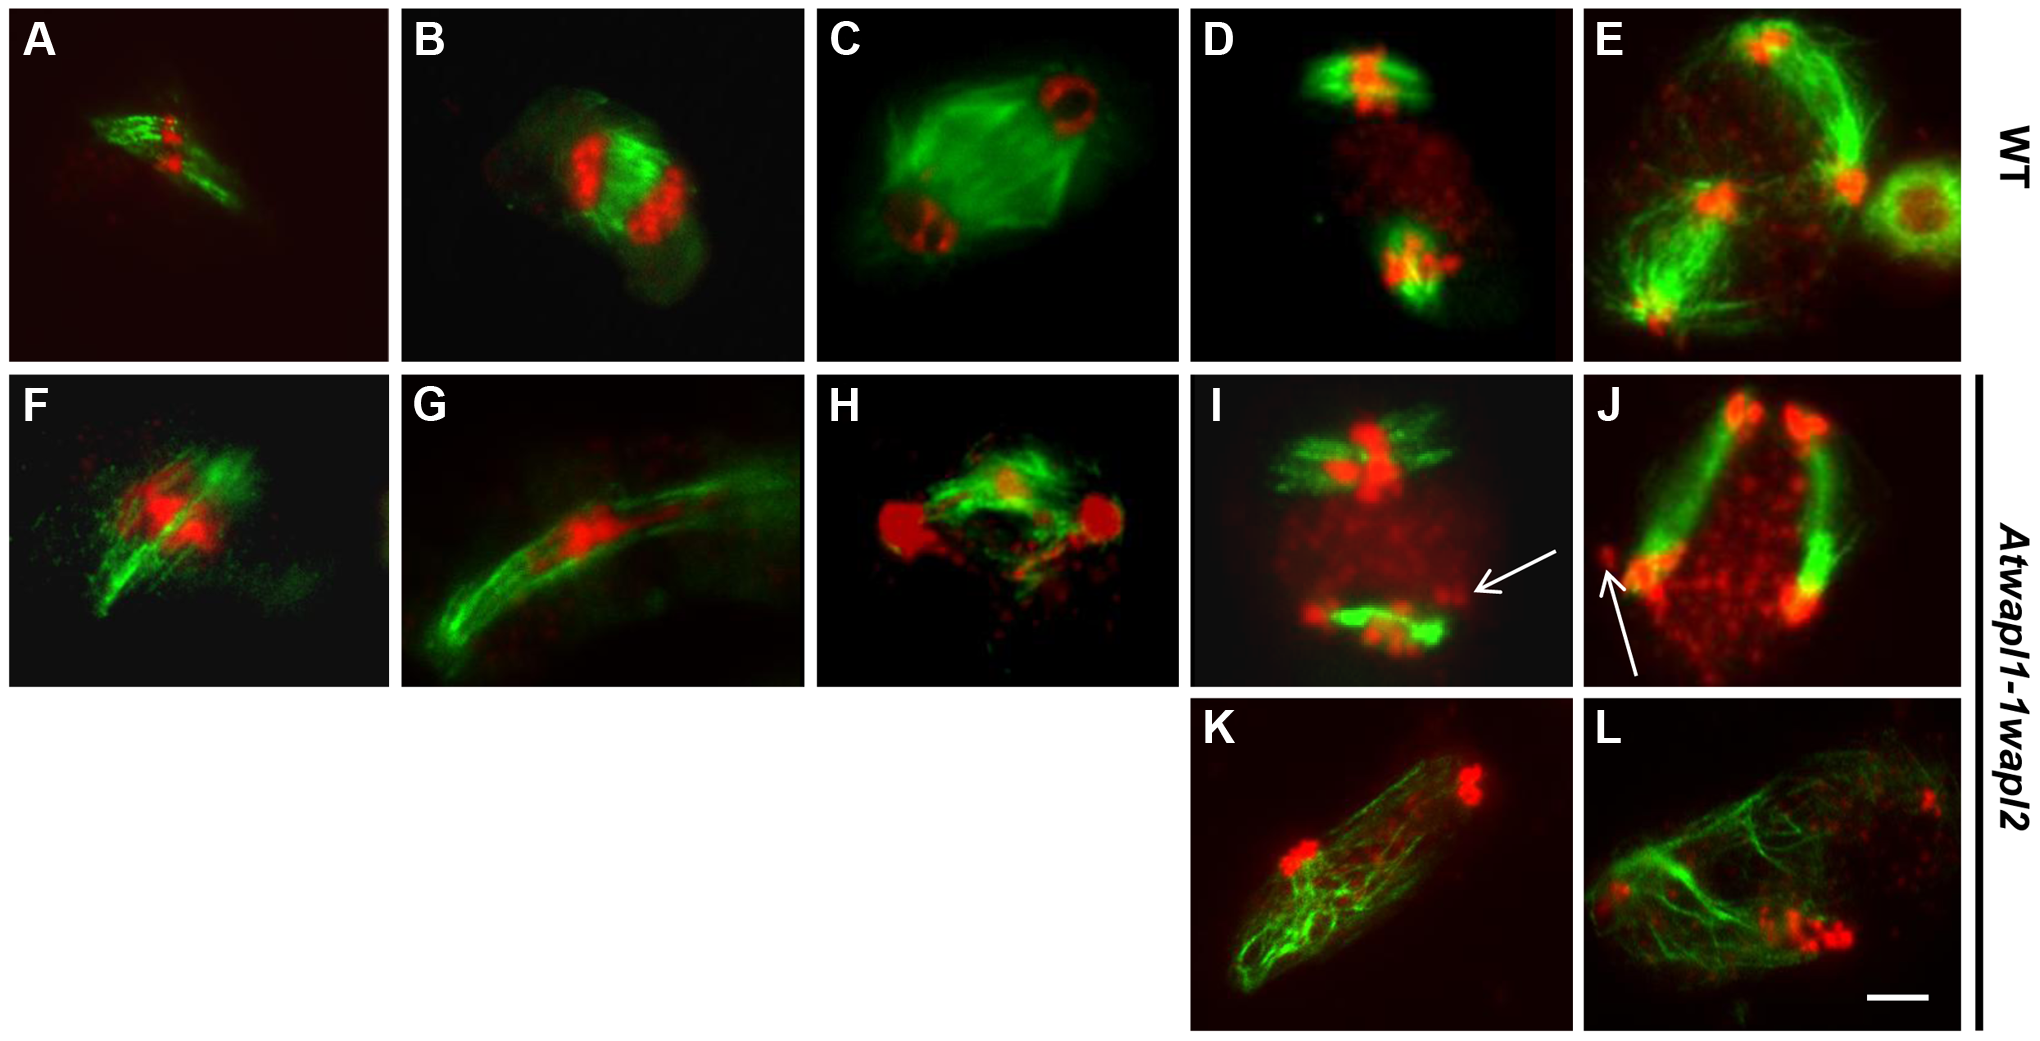 Meiotic spindle assembly and structure is altered in <i>wapl</i> plants.